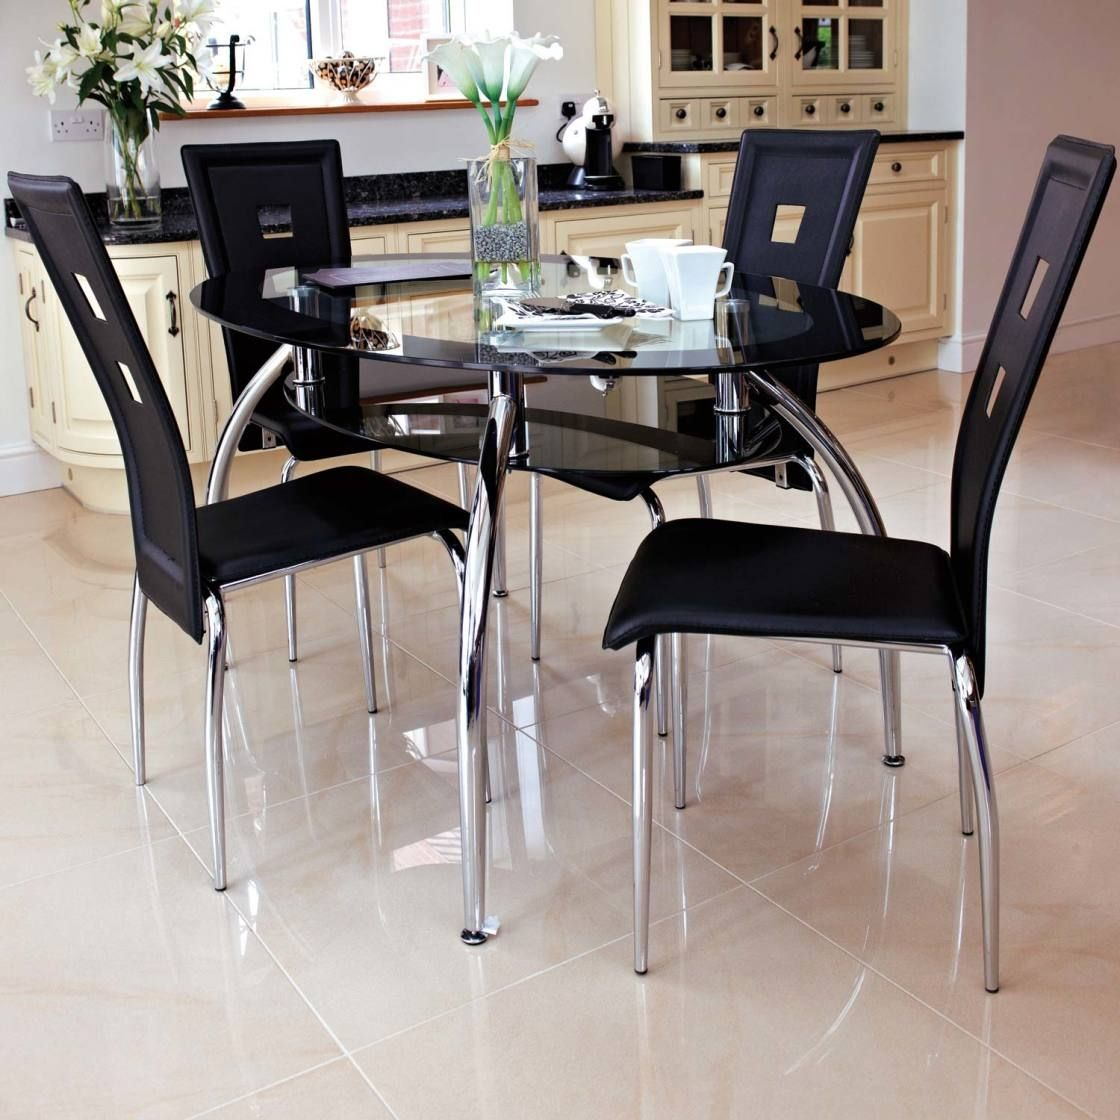 Black Wooden Furniture For A Dining Room A Charming And Warm Atmosphere Black Glass Dining Table Glass Dining Table Round Dining Table Sets